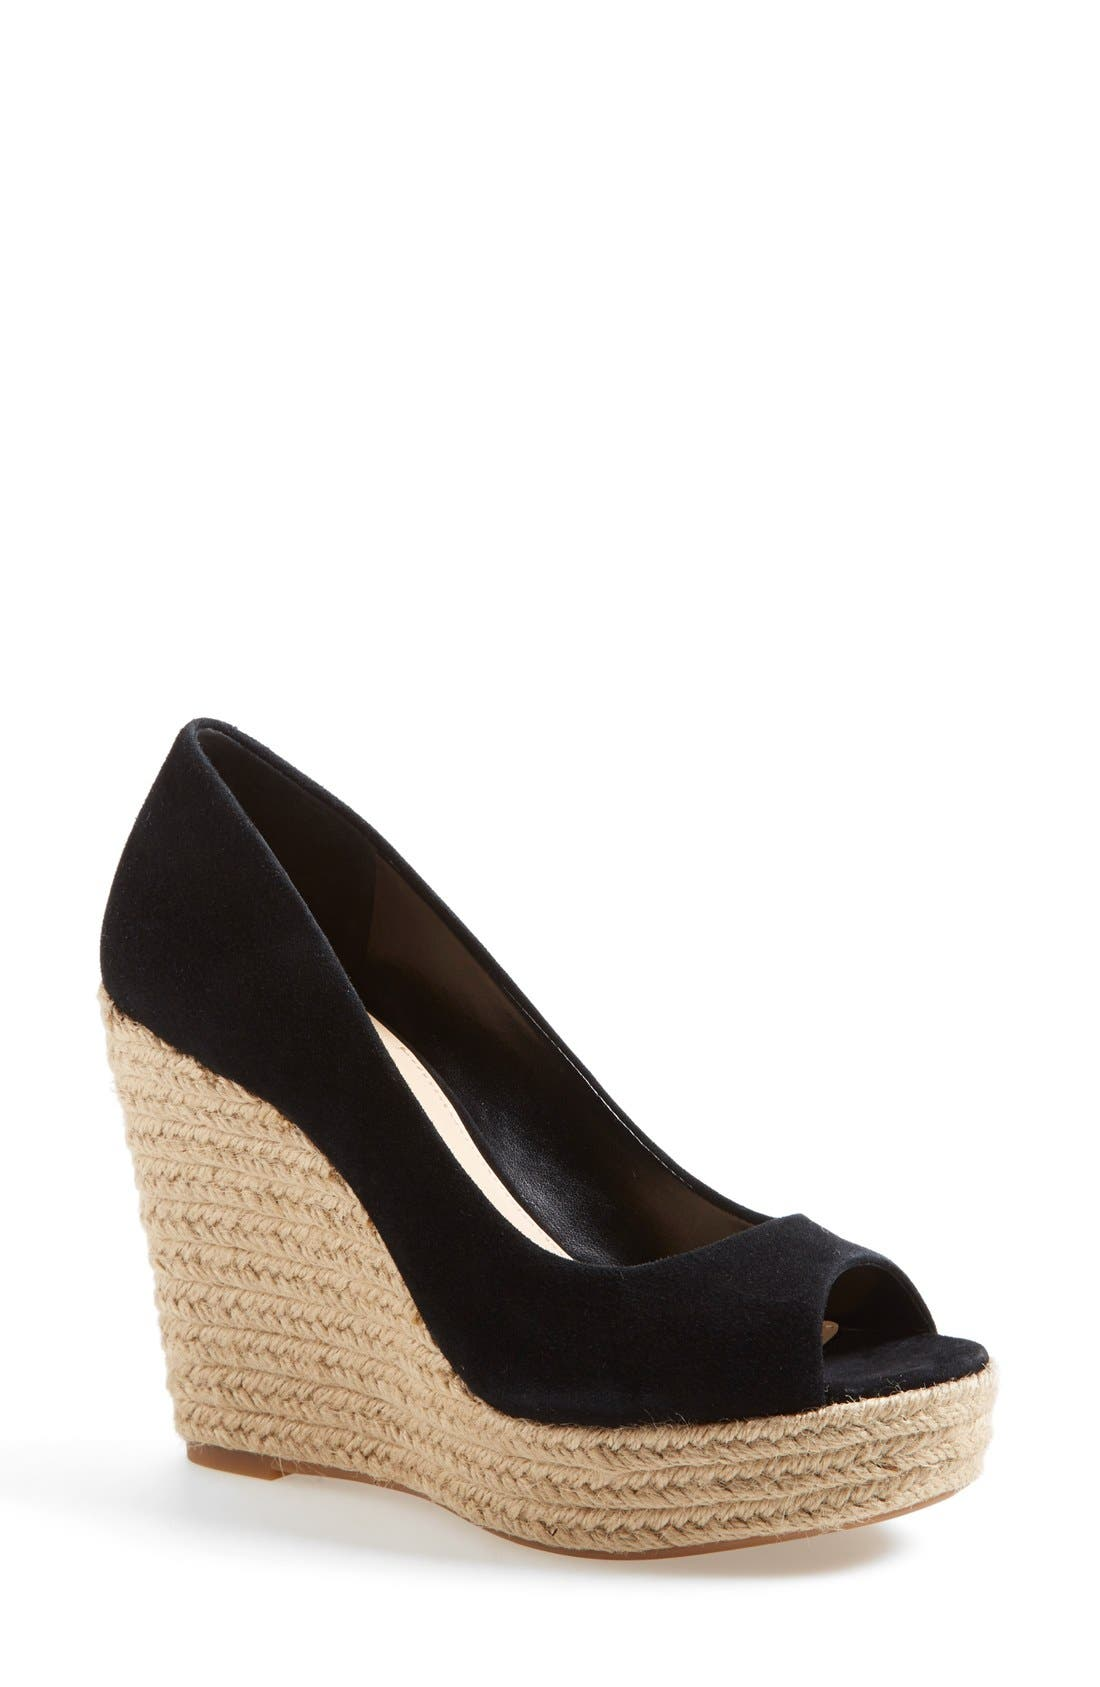 'Totsi' Peep Toe Espadrille Wedge,                             Main thumbnail 1, color,                             001